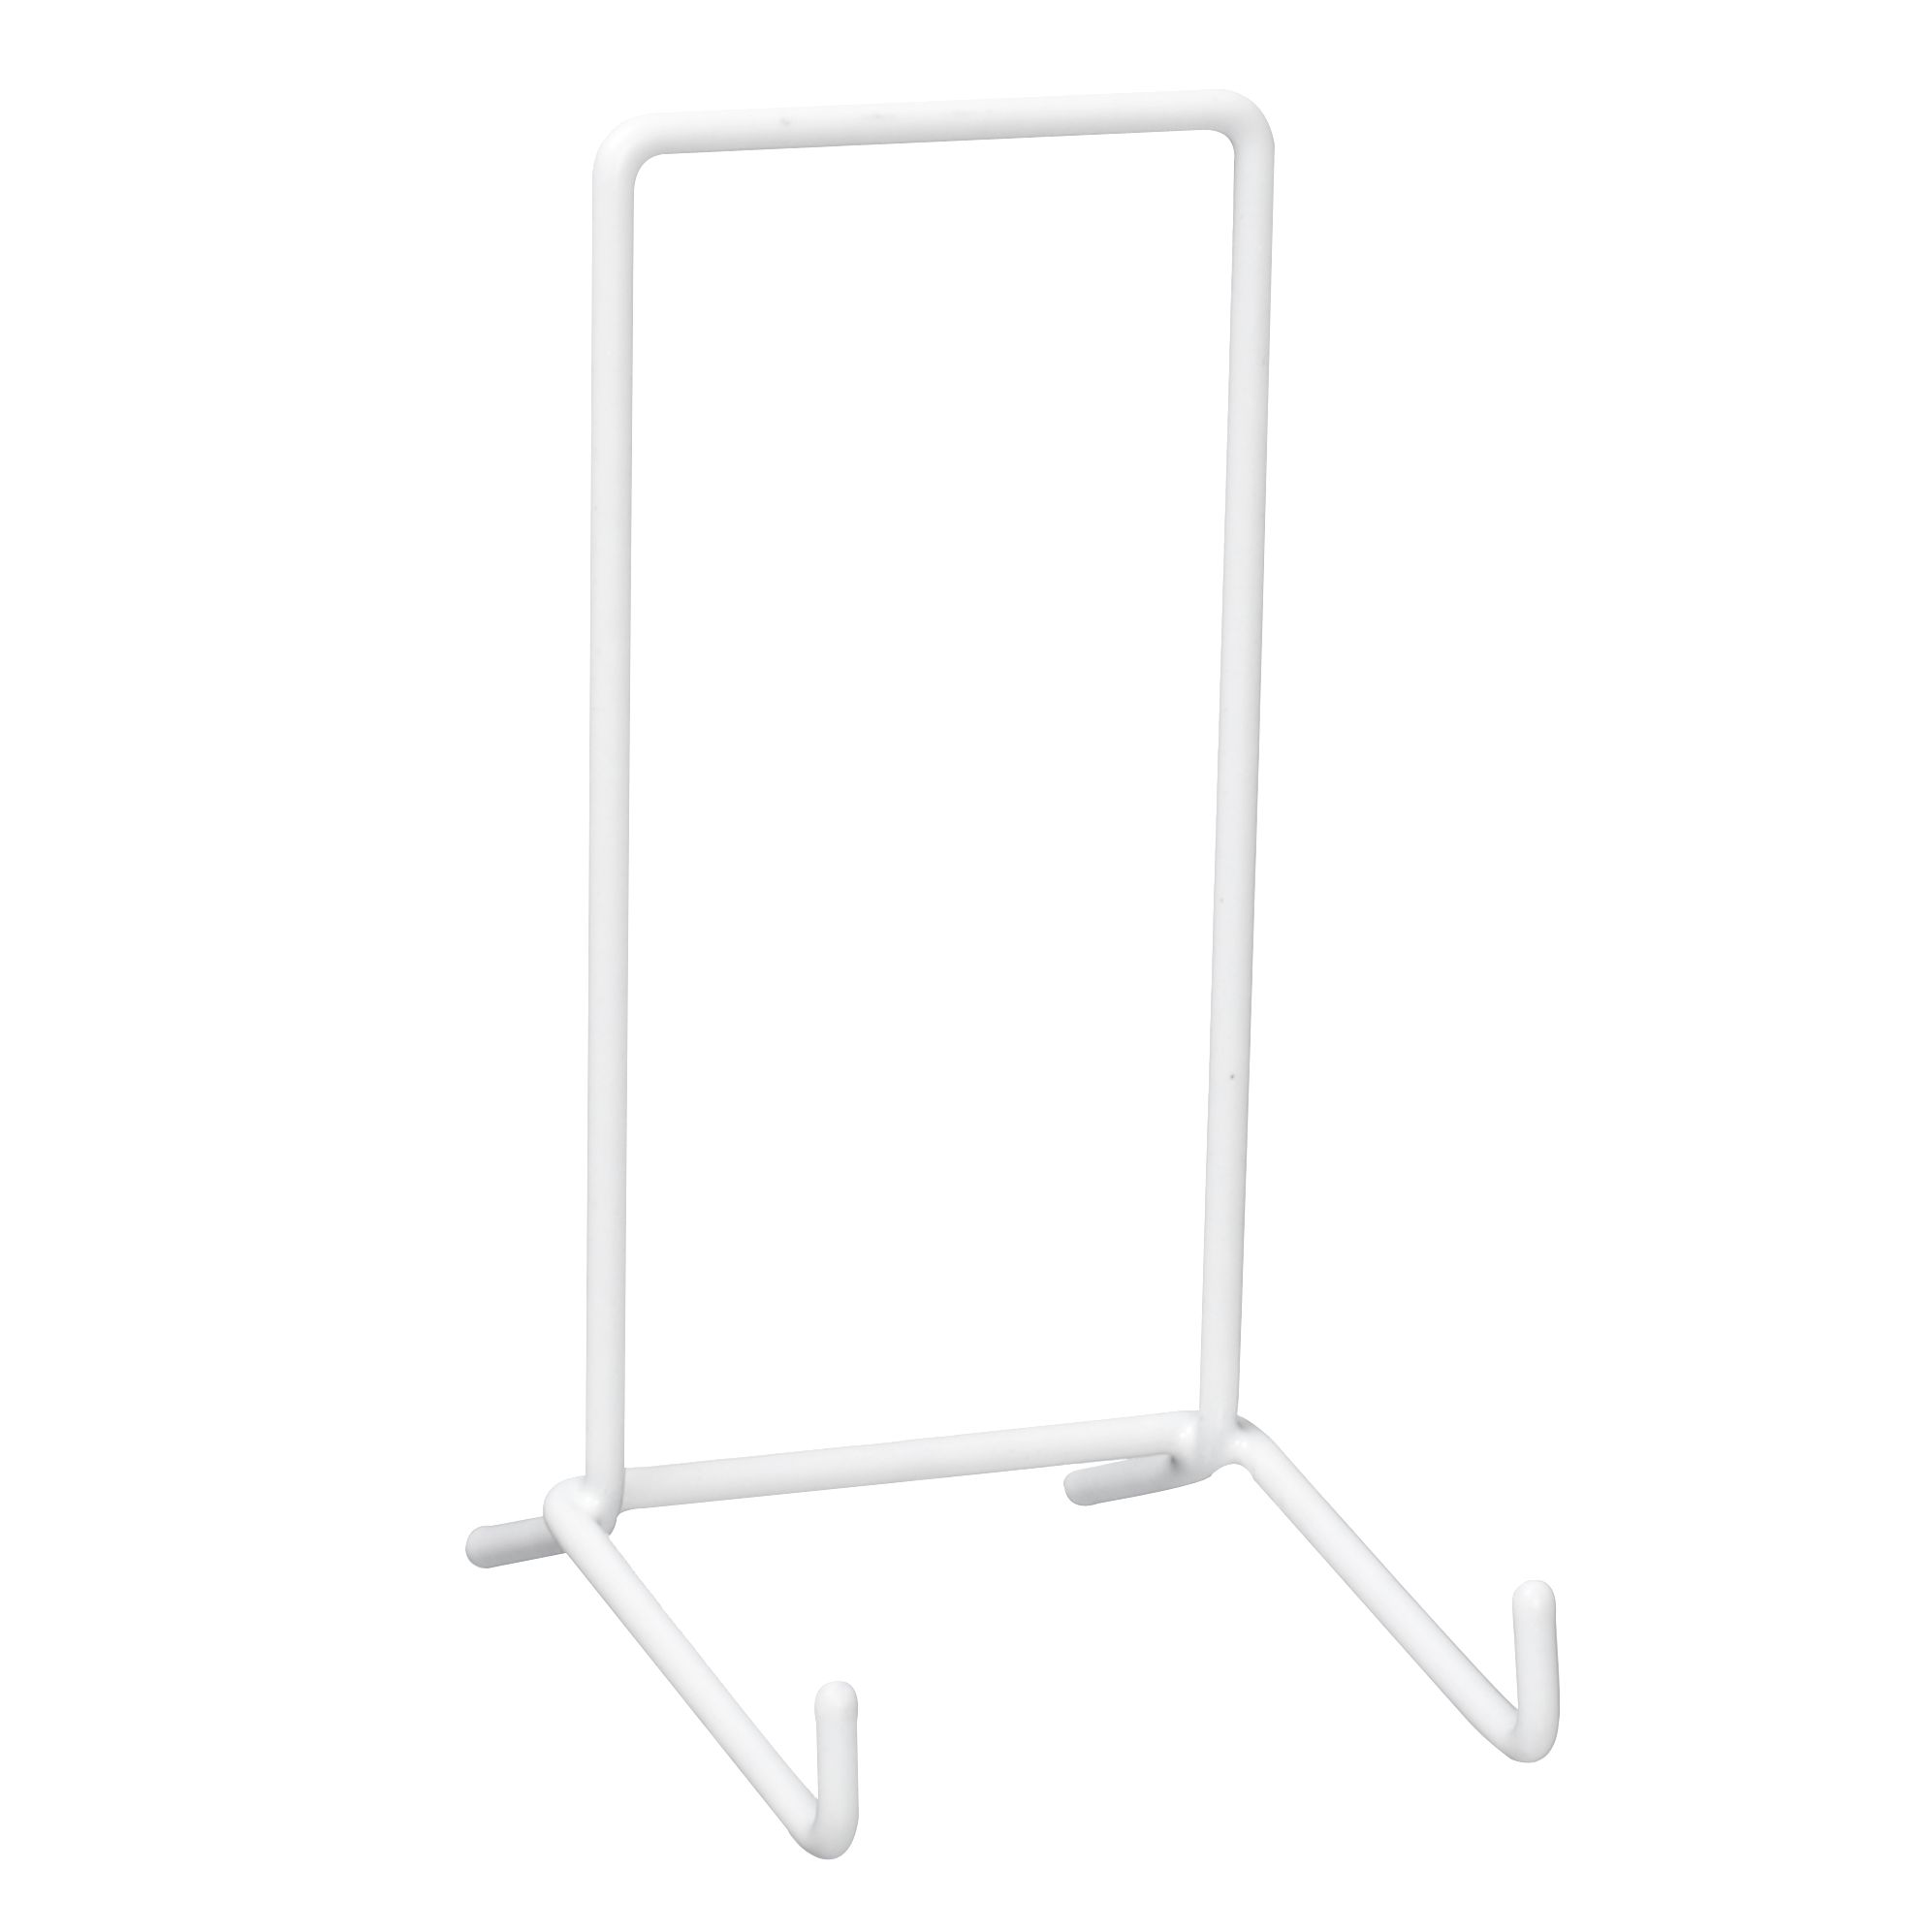 Unbranded Plastic Coated Stand, White